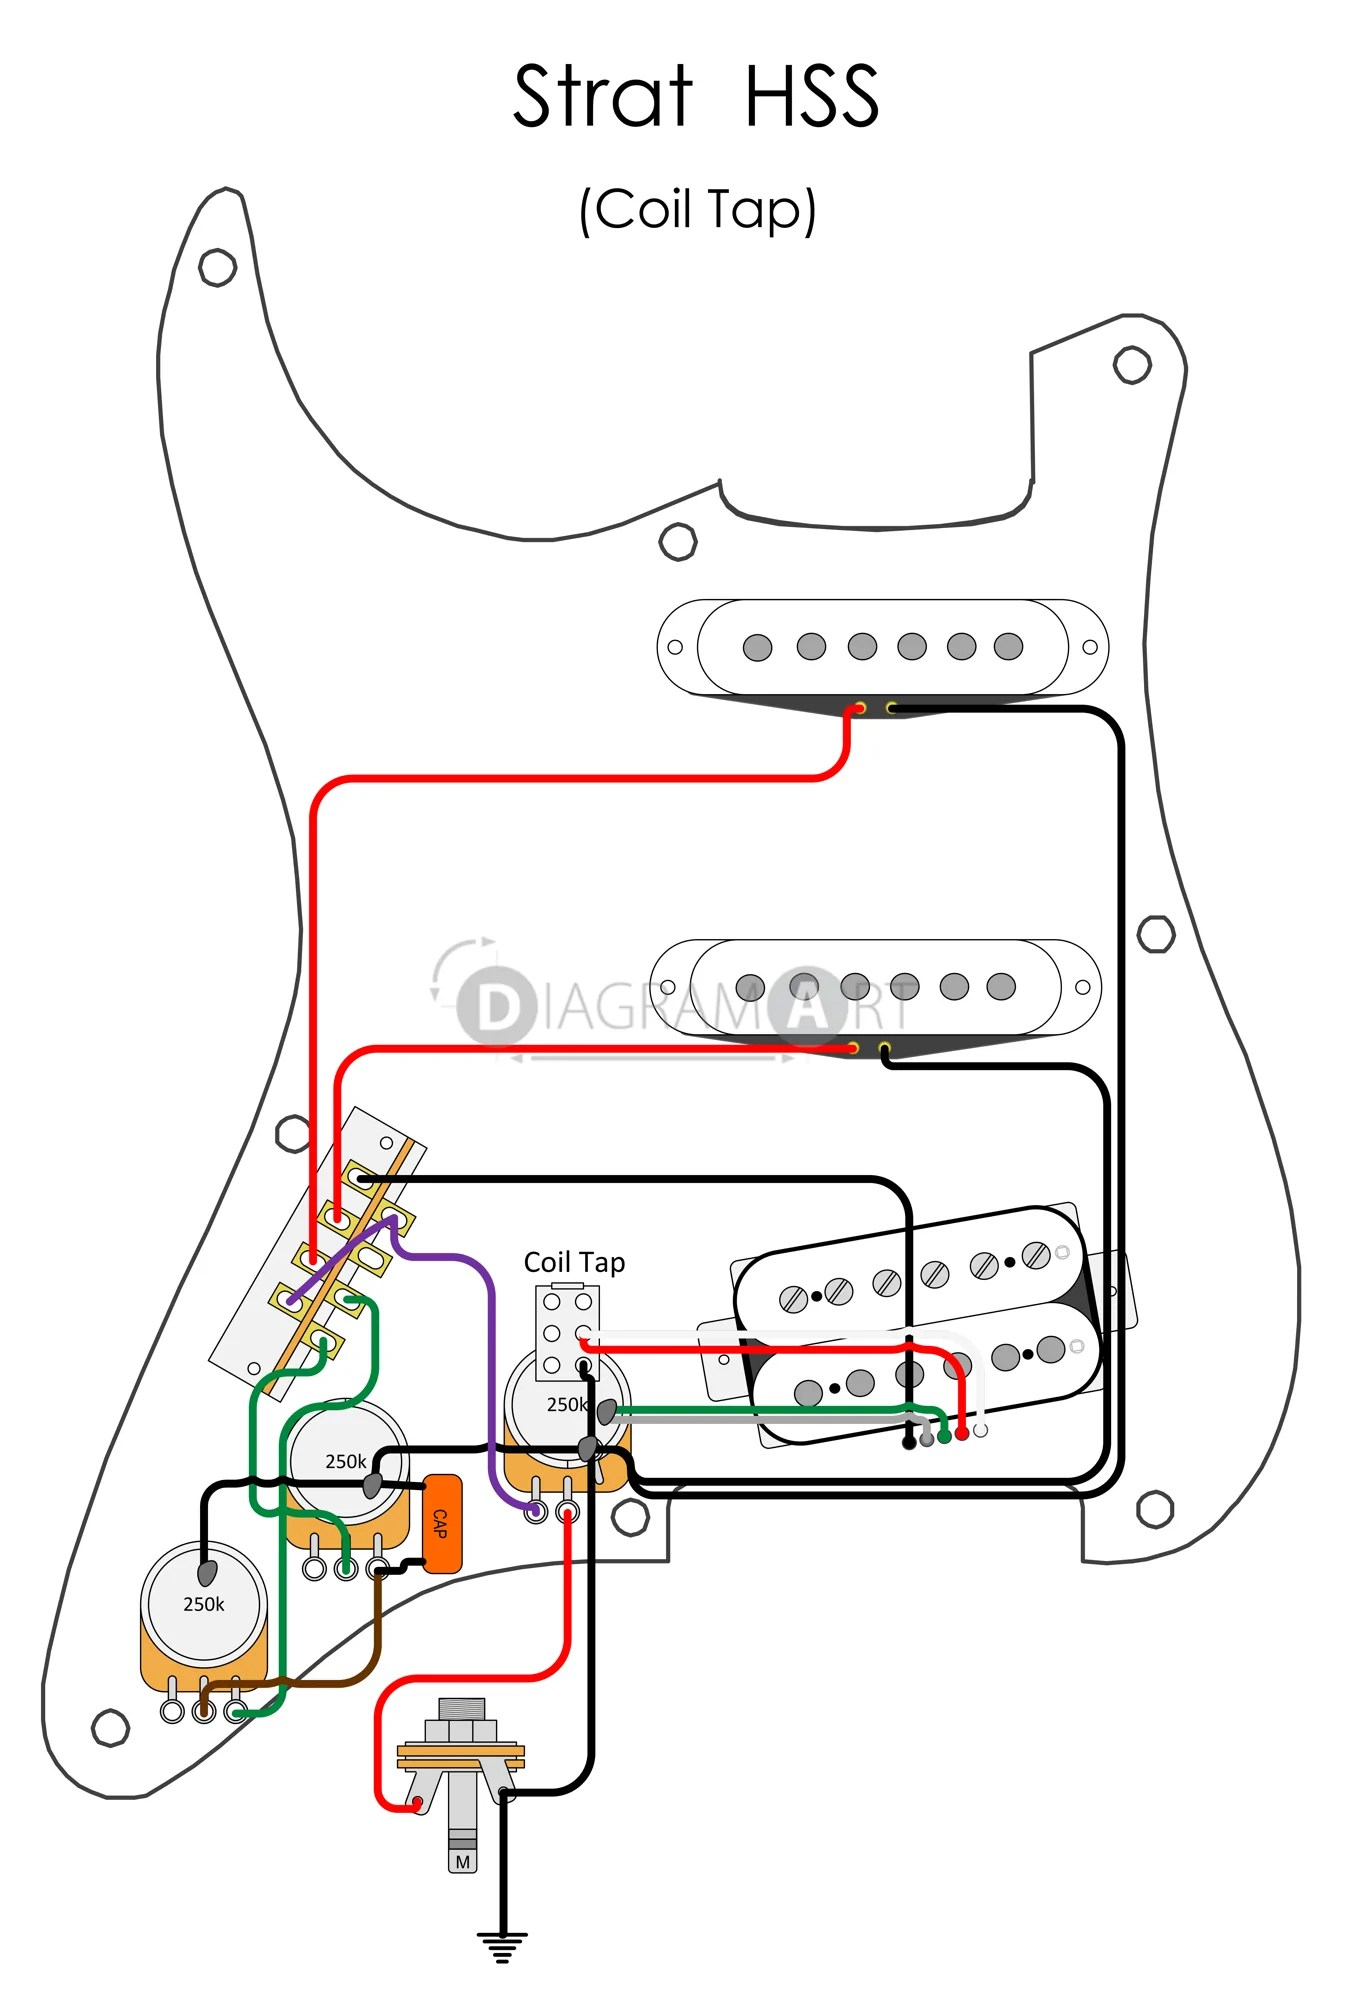 ssh wiring diagram schema diagram database hss strat wiring diagram single tone [ 1348 x 2000 Pixel ]